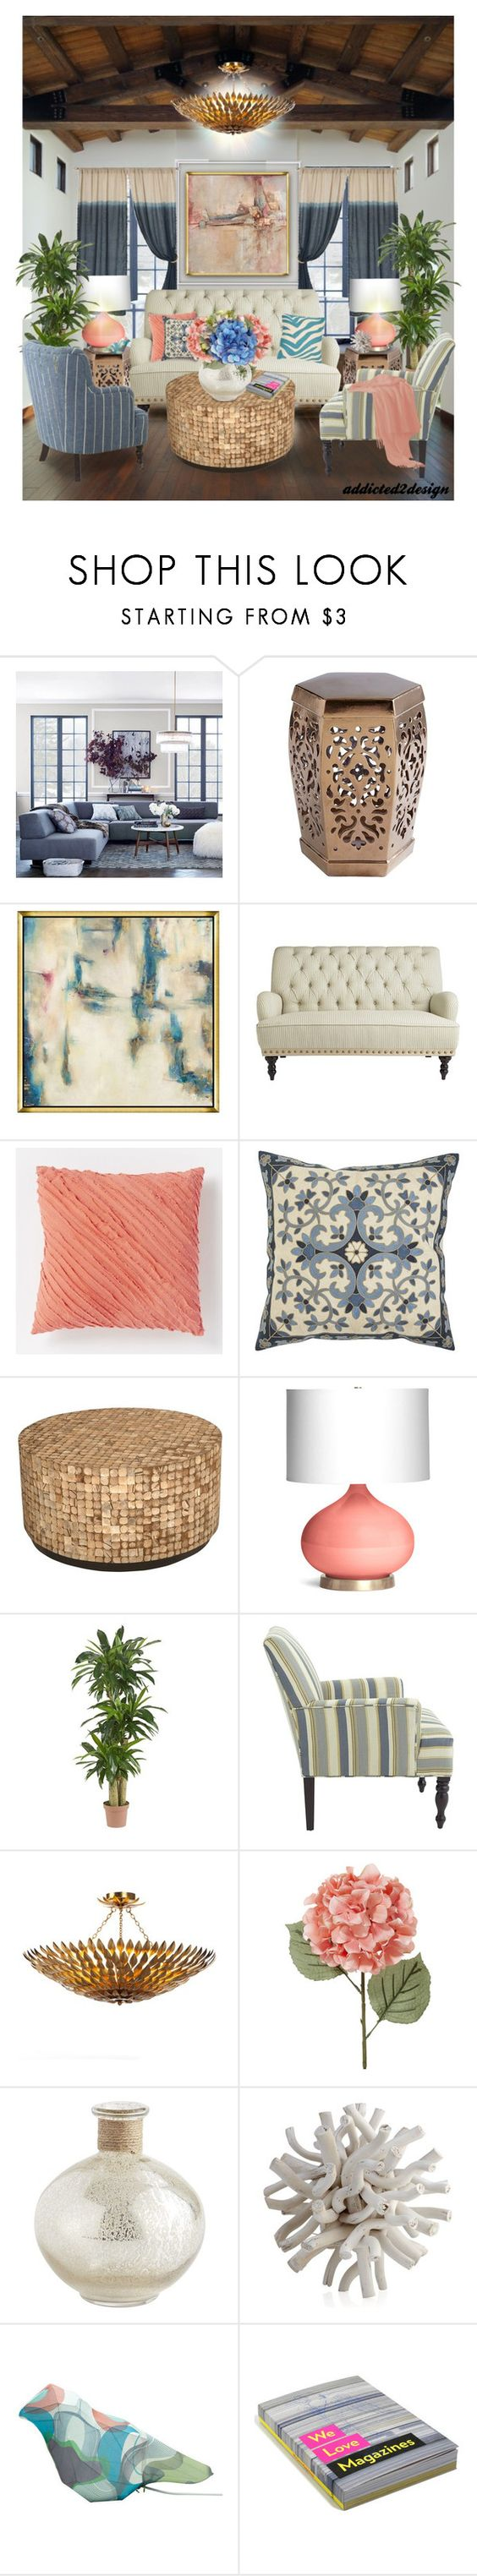 """This is my 2nd Livingroom Set...Pink Panther..."" by addicted2design ❤ liked on Polyvore featuring interior, interiors, interior design, home, home decor, interior decorating, West Elm, Pier 1 Imports, Jeffan and Nearly Natural"